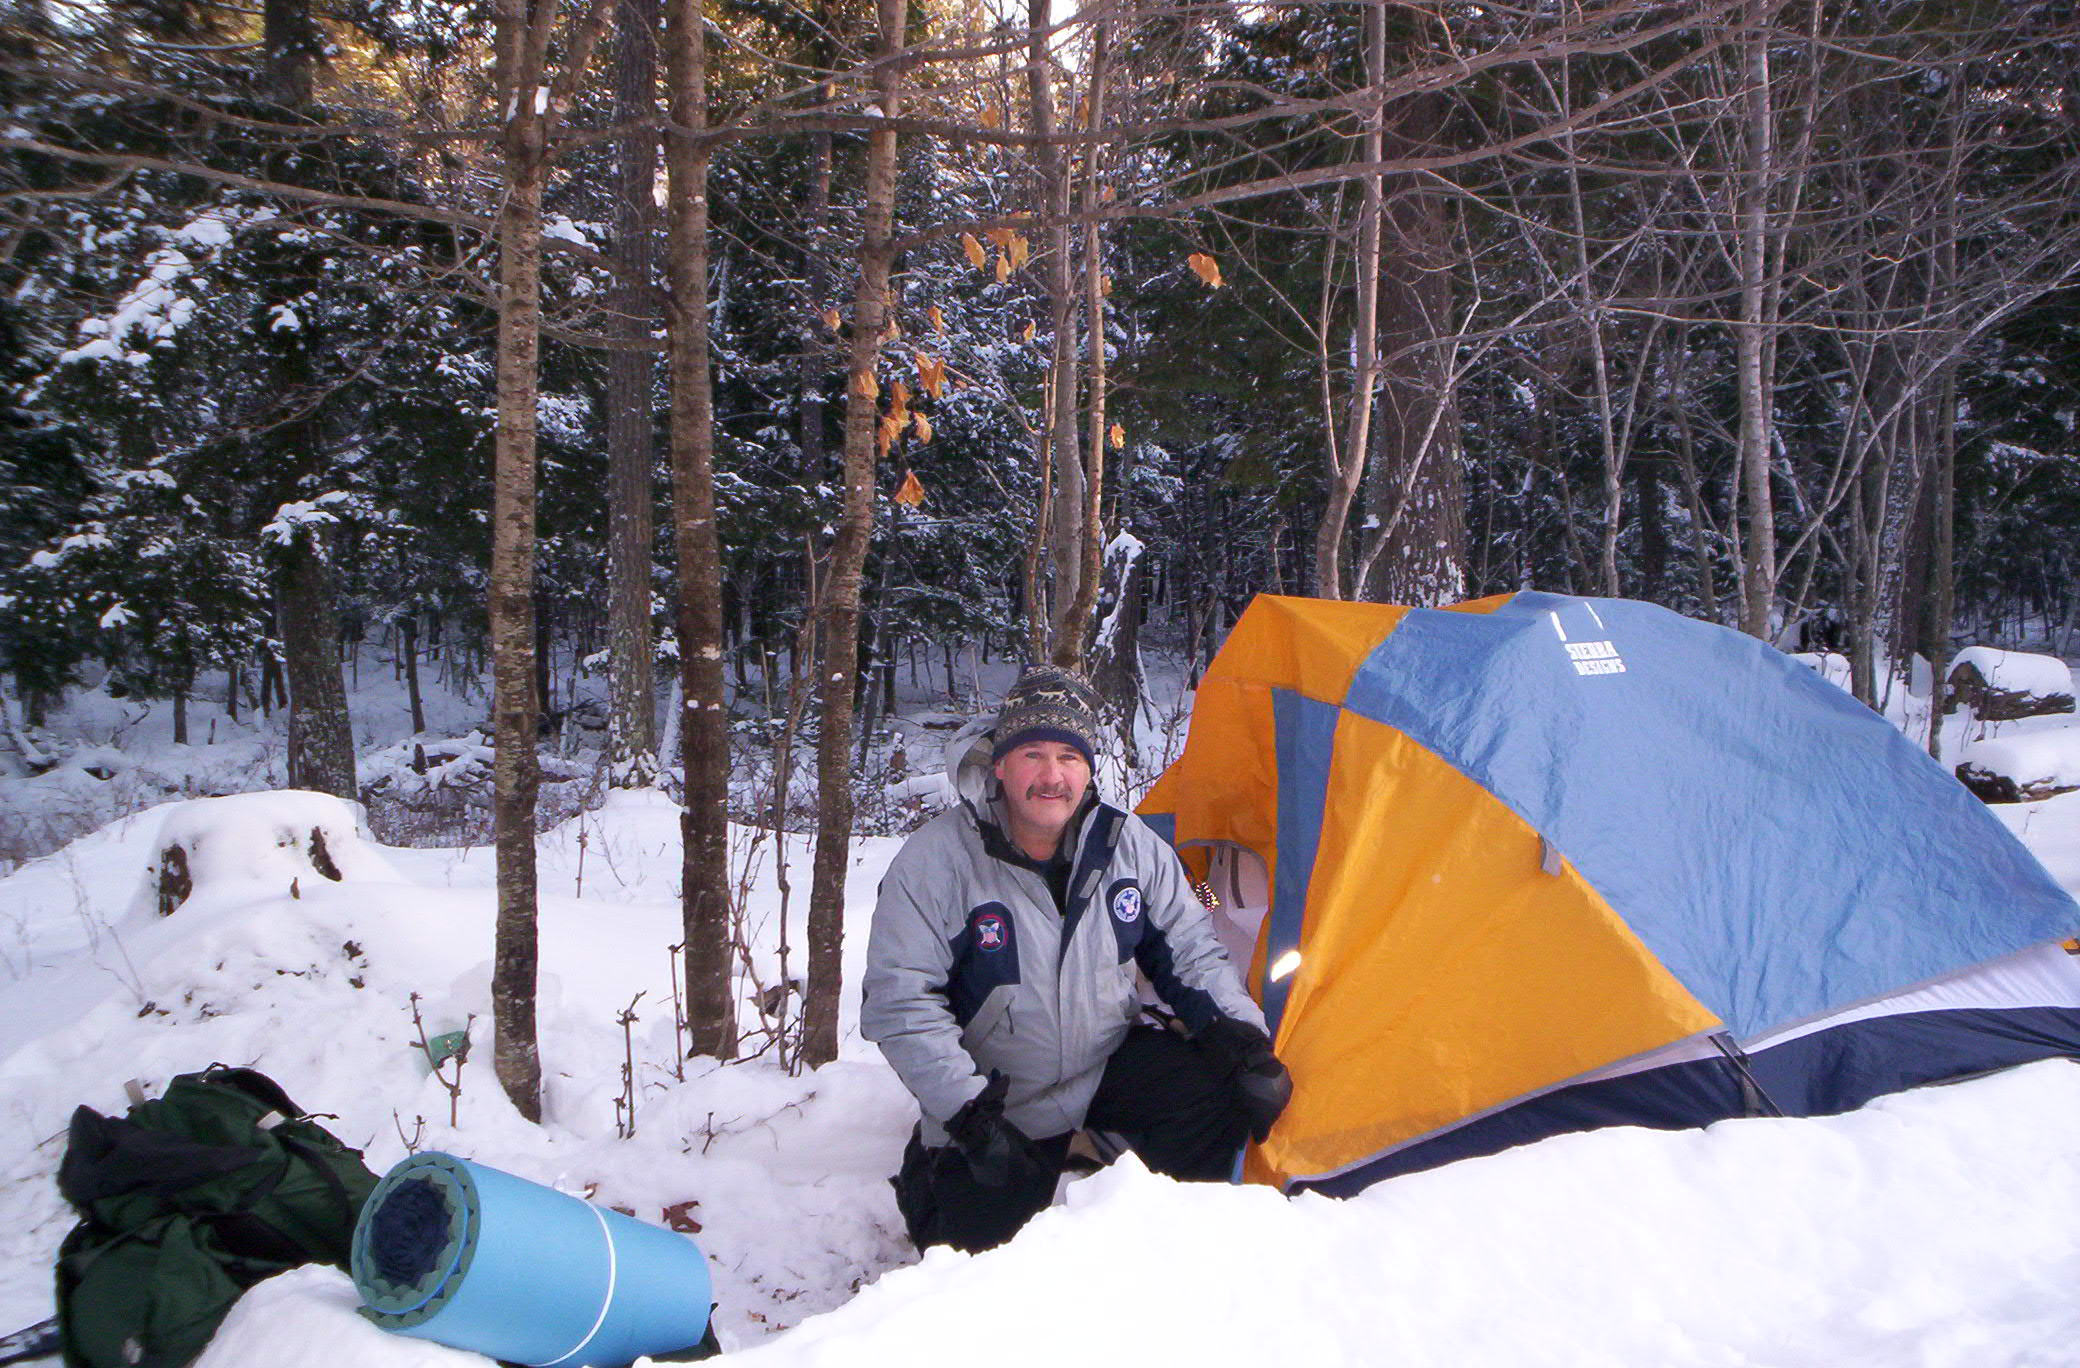 Jim Joque with a tent in the wilderness